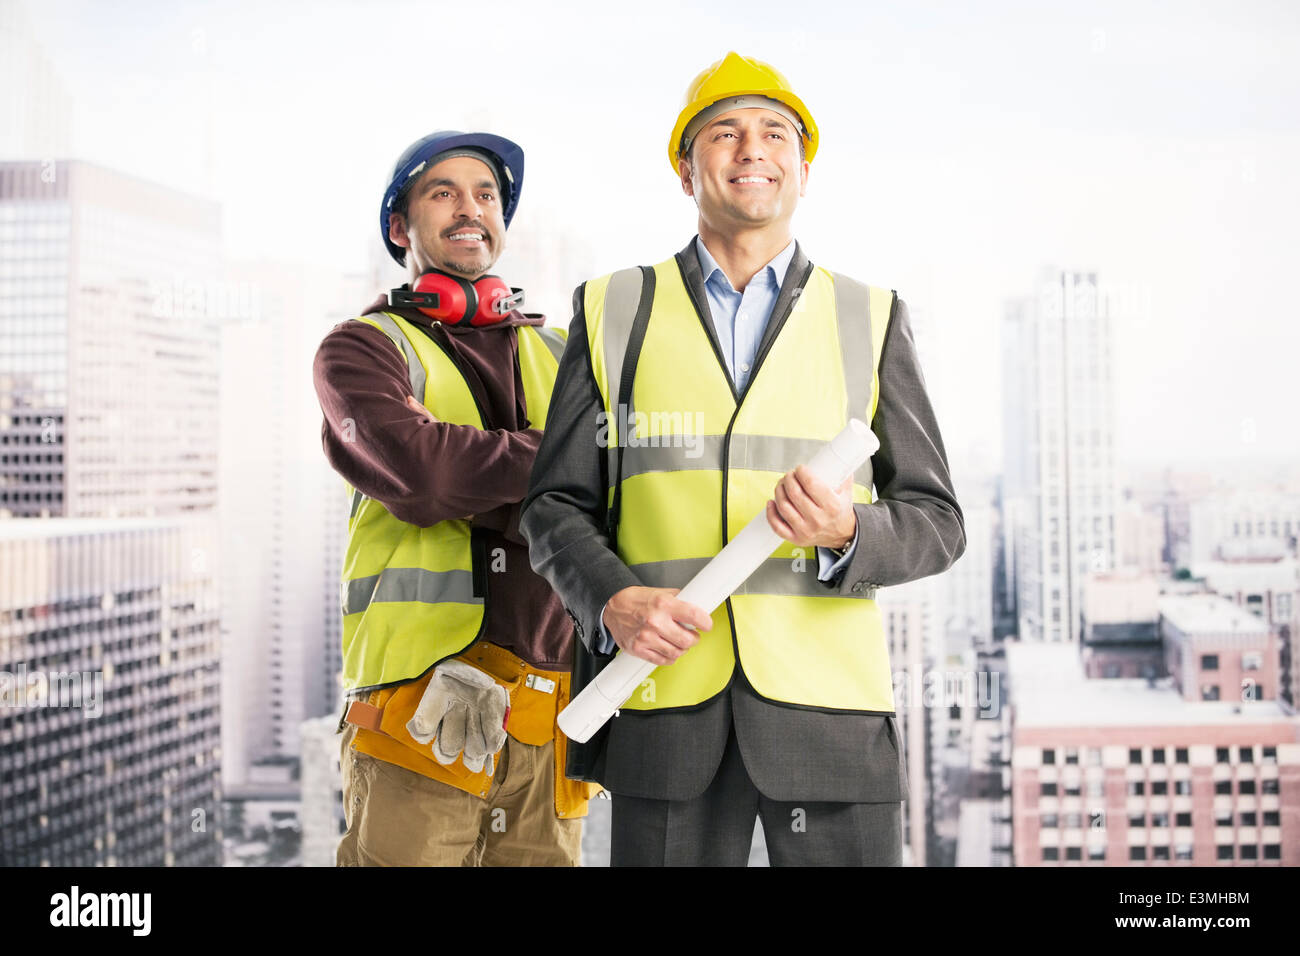 Construction workers in urban window - Stock Image